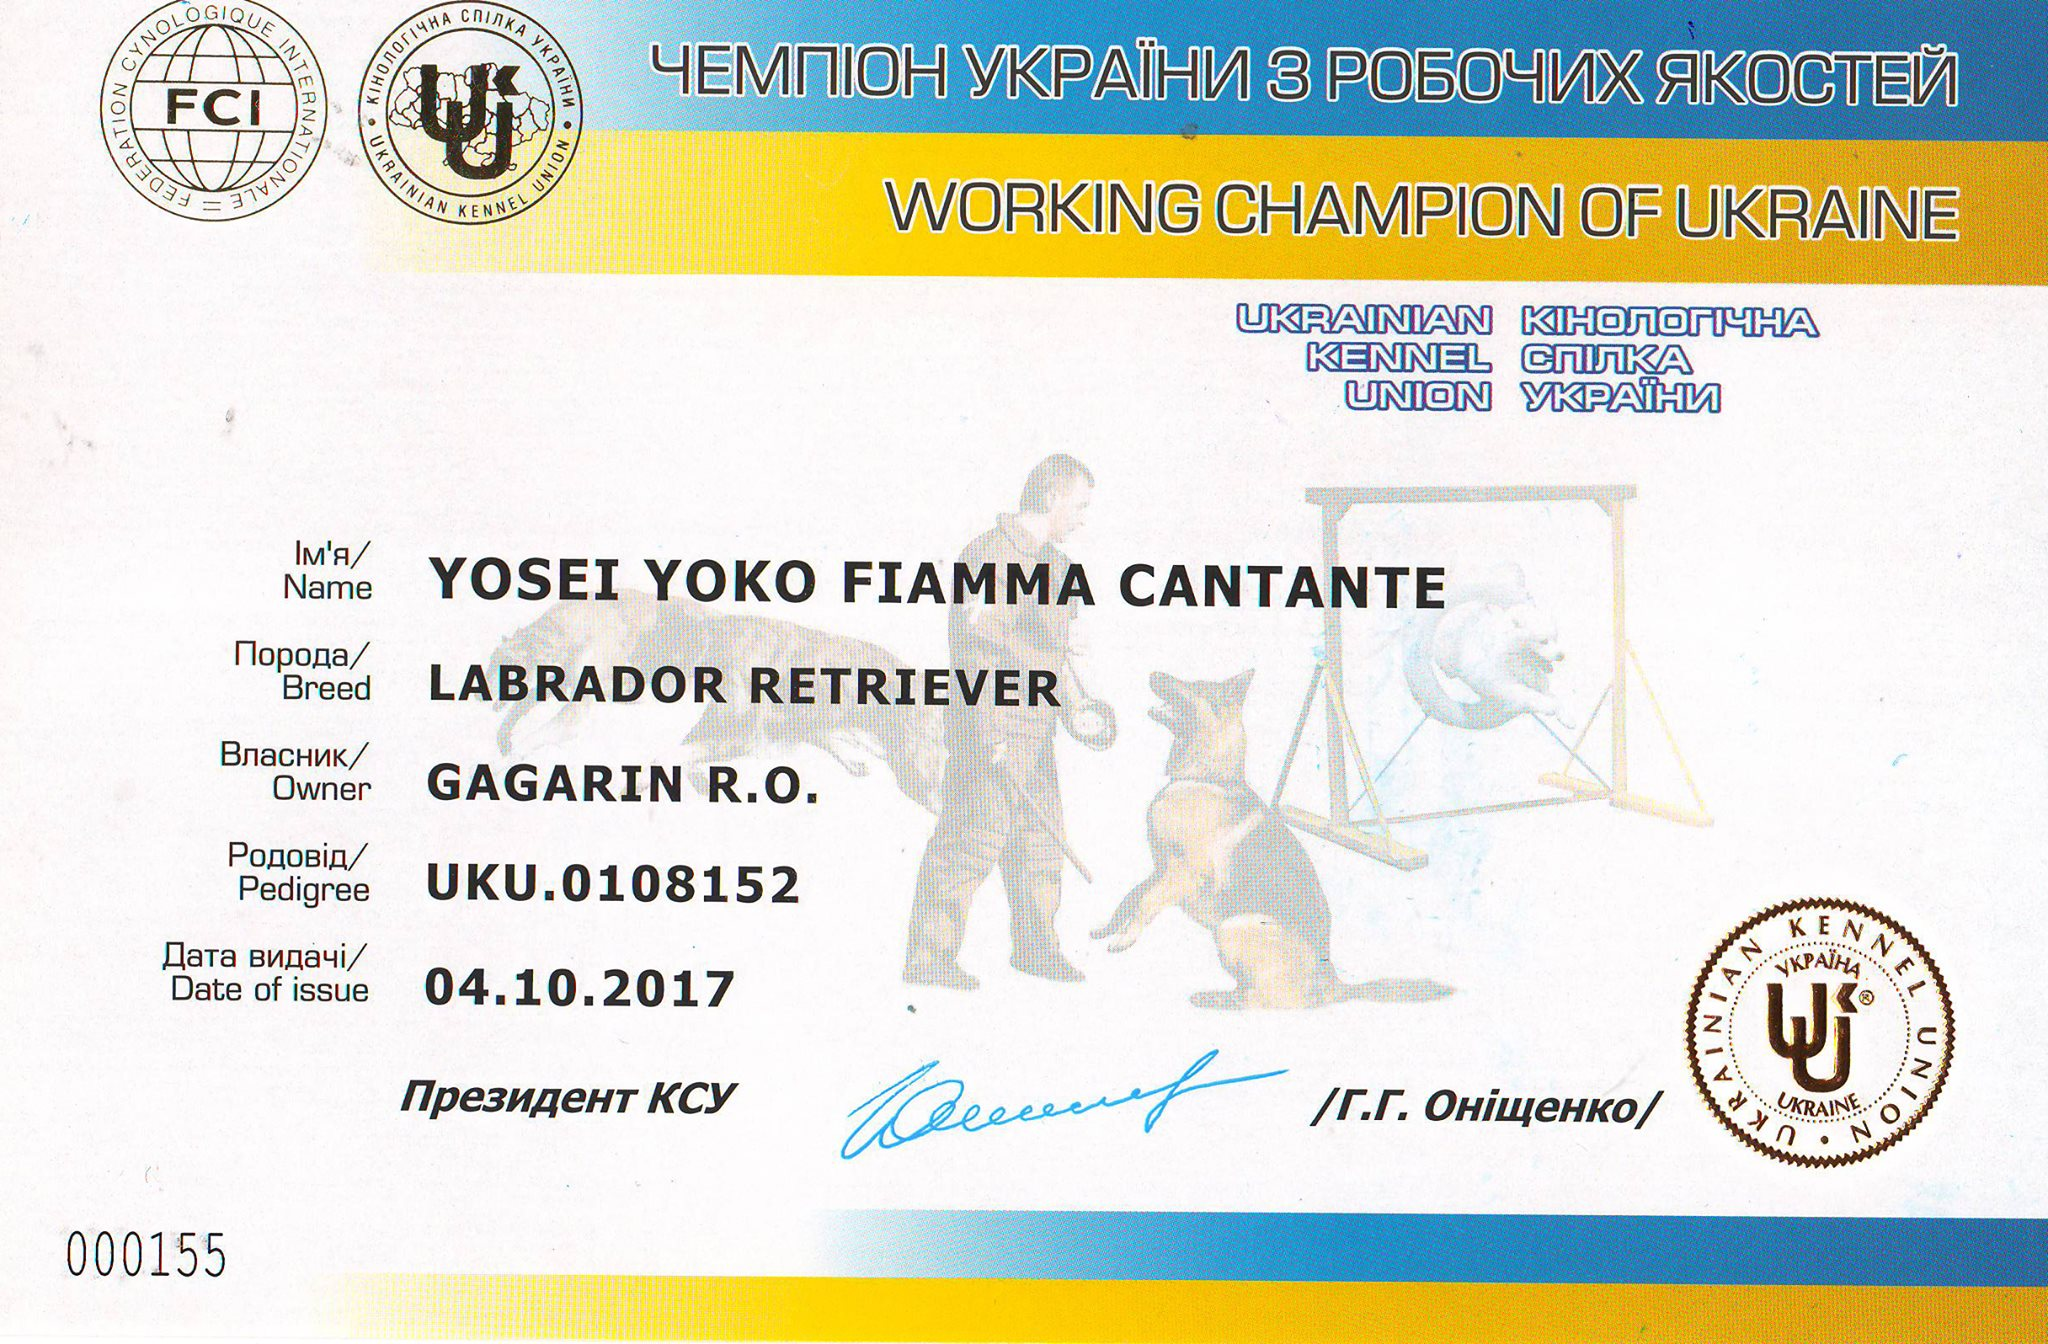 Yosei Yoko Fiamma Cantante_Working Champion